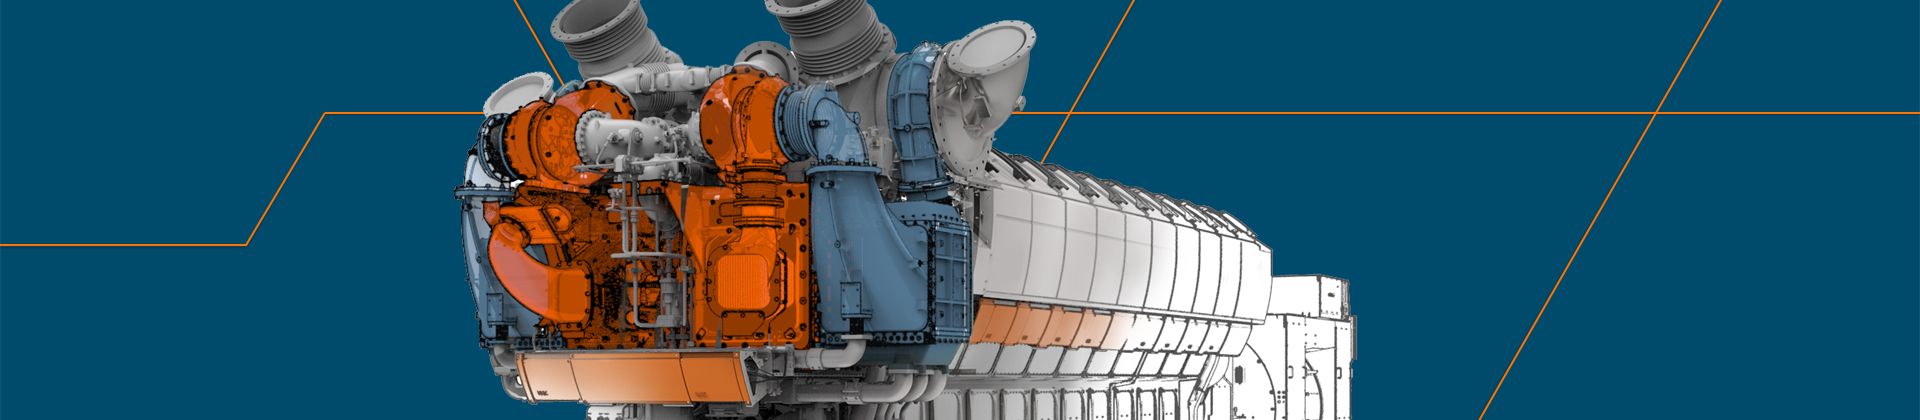 Webinar Wartsila 31 for Power Plants